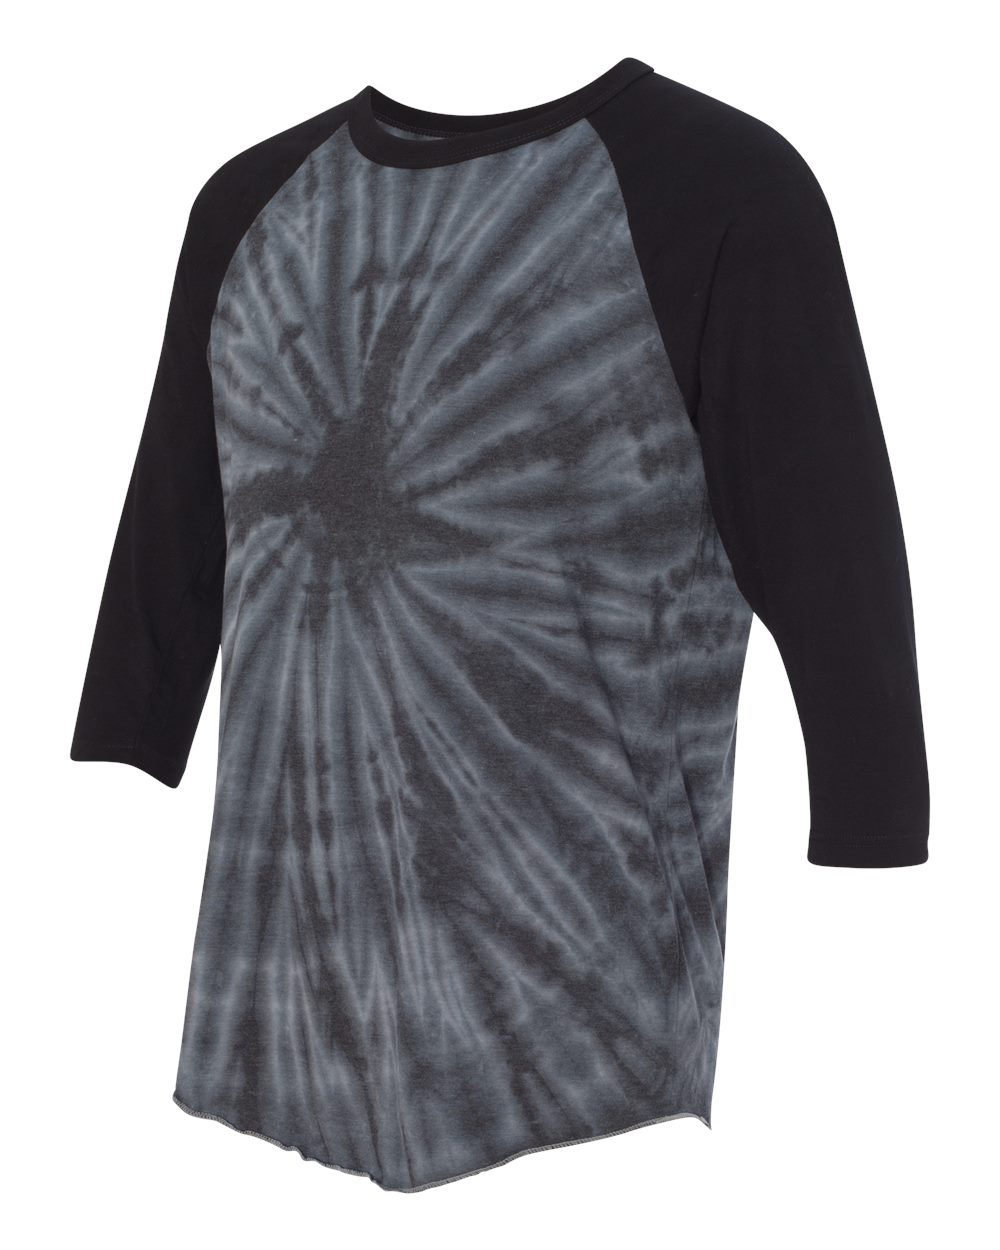 Dyenomite 660VR - Tie-Dyed Three-Quarter Sleeve Raglan T-Shirt